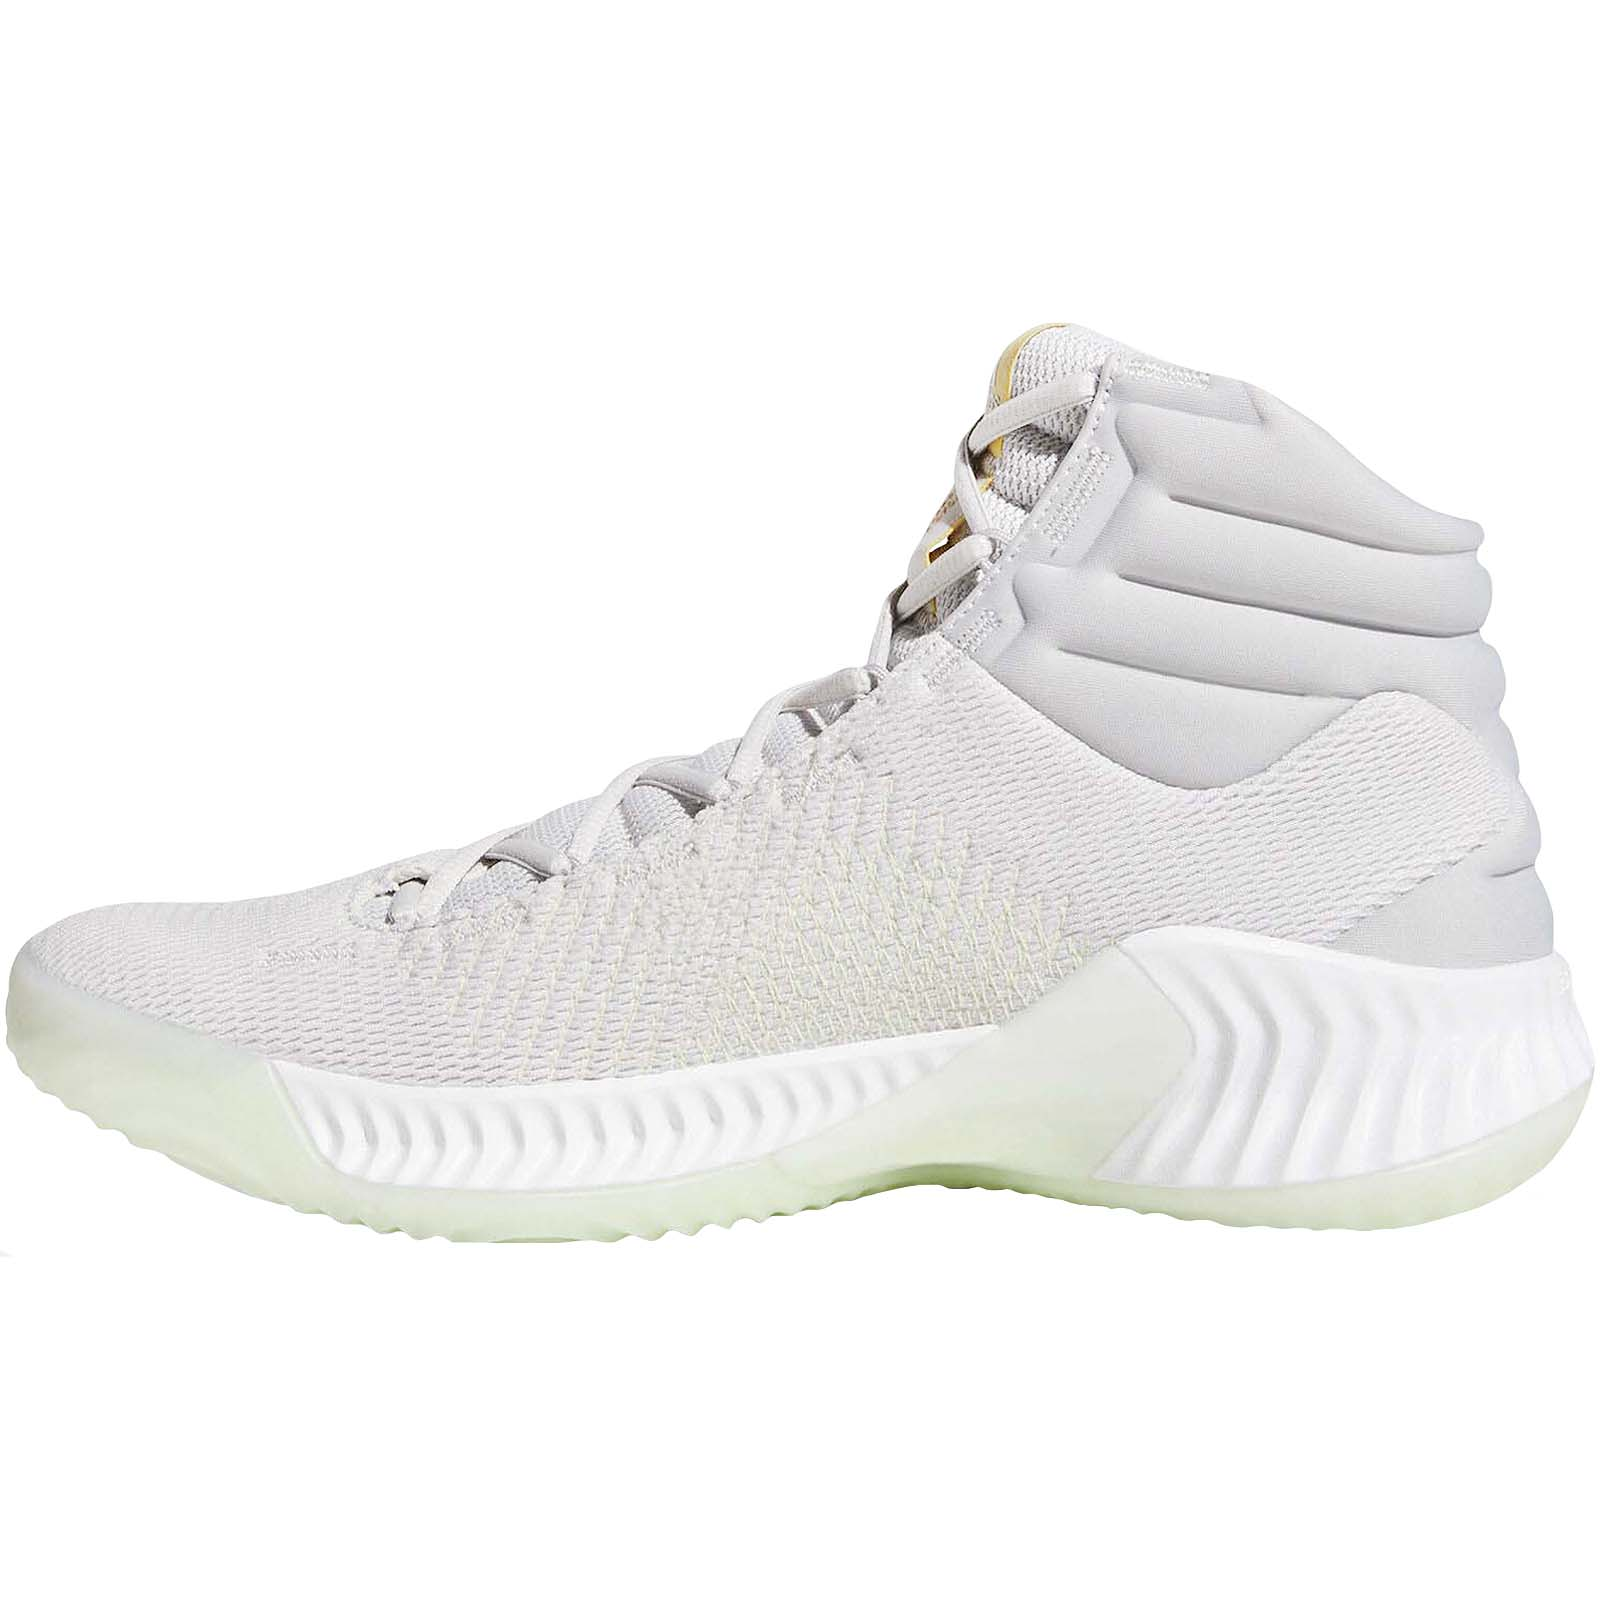 adidas-Performance-Mens-Pro-Bounce-2018-Basketball-Trainers-Shoes miniatuur 7